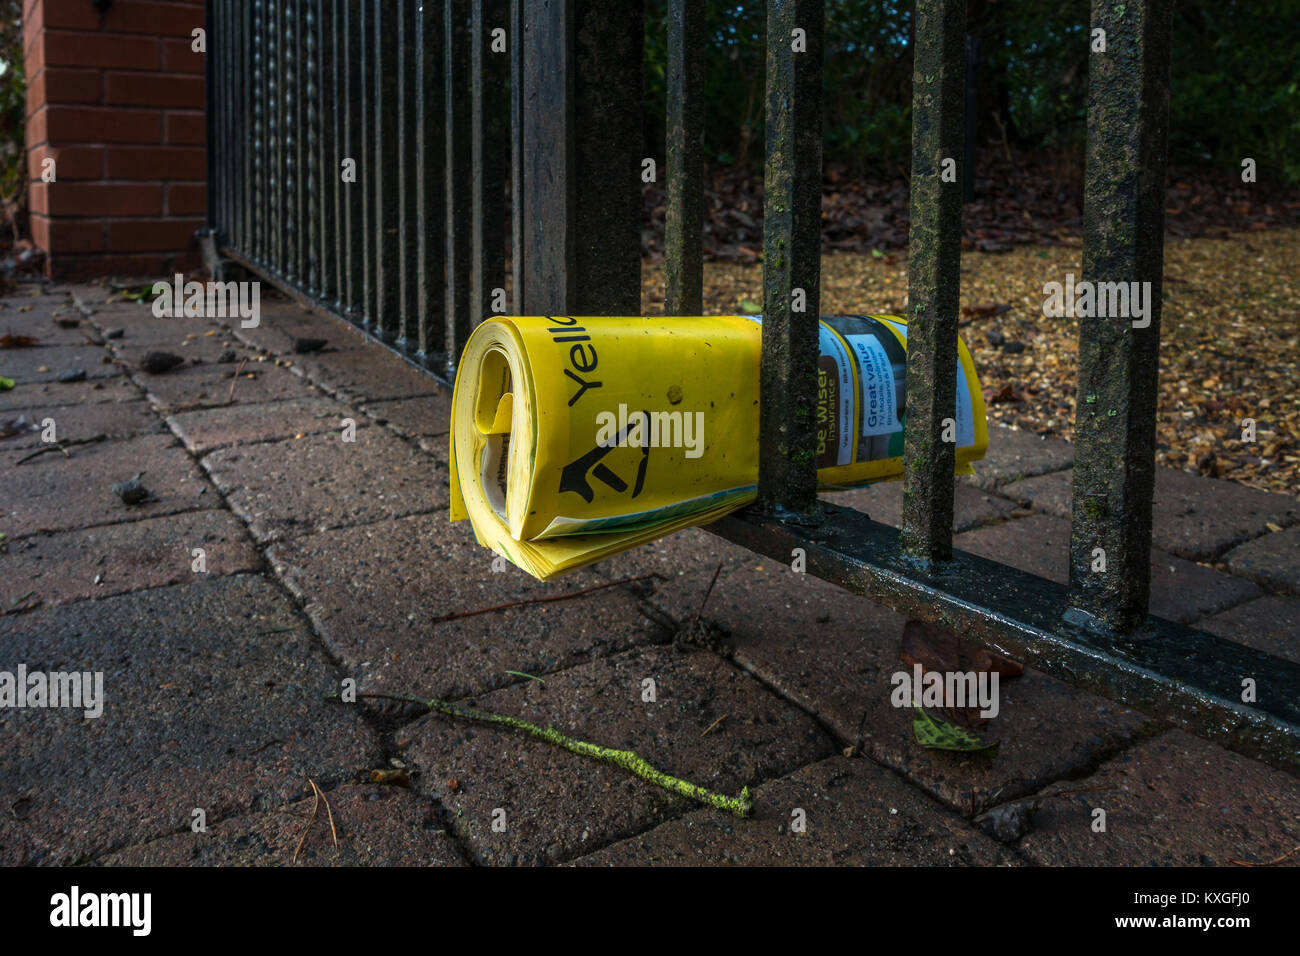 Ilkley, West Yorkshire, UK. 10th Jan, 2018. Unwanted Yellow Pages telephone book left outside. Are telephone directories - Stock Image